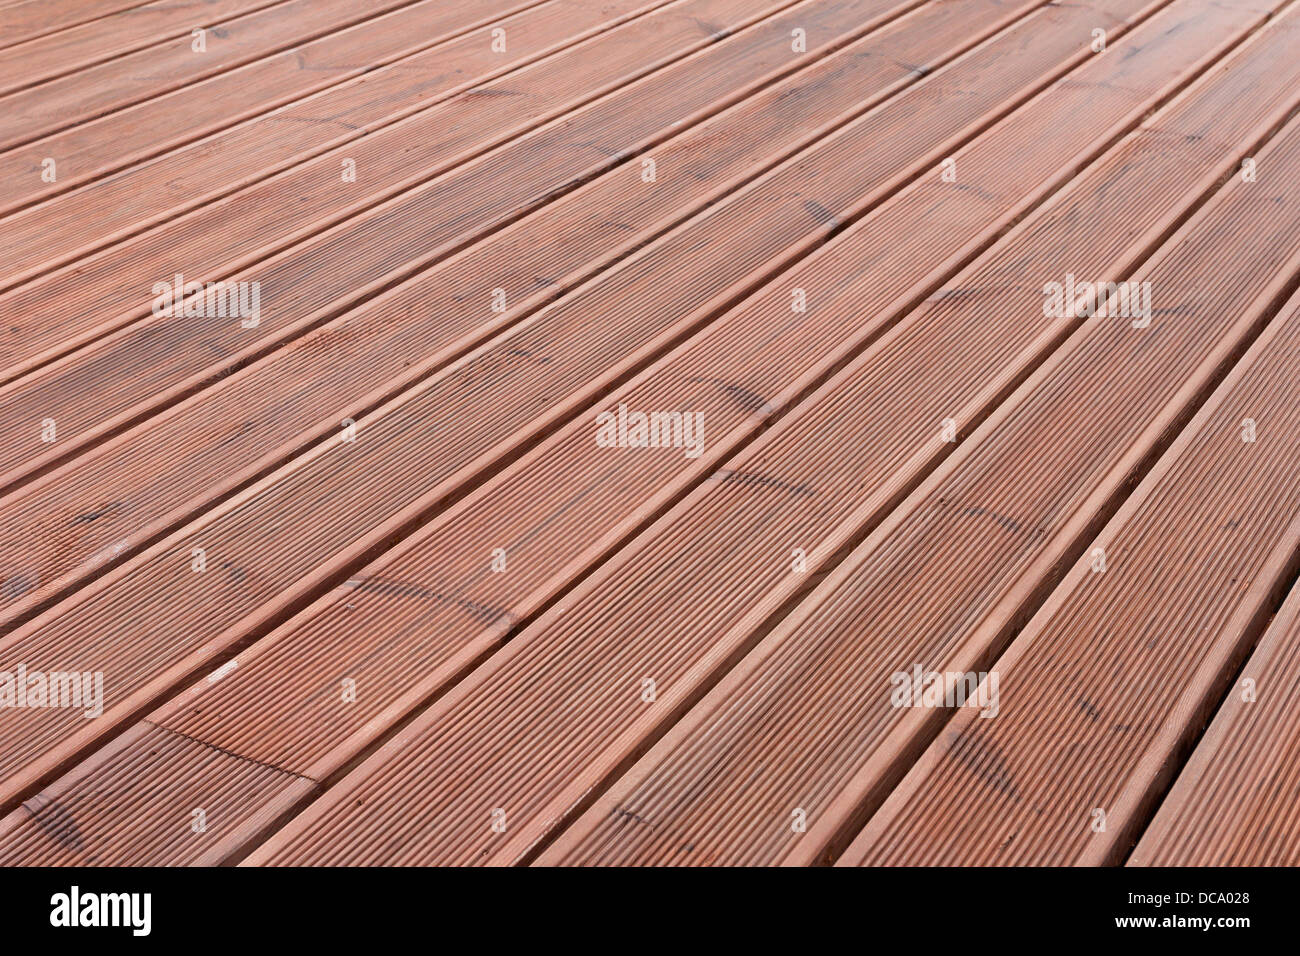 nasses holz terrasse boden hintergrundtextur stockfoto bild 59226560 alamy. Black Bedroom Furniture Sets. Home Design Ideas